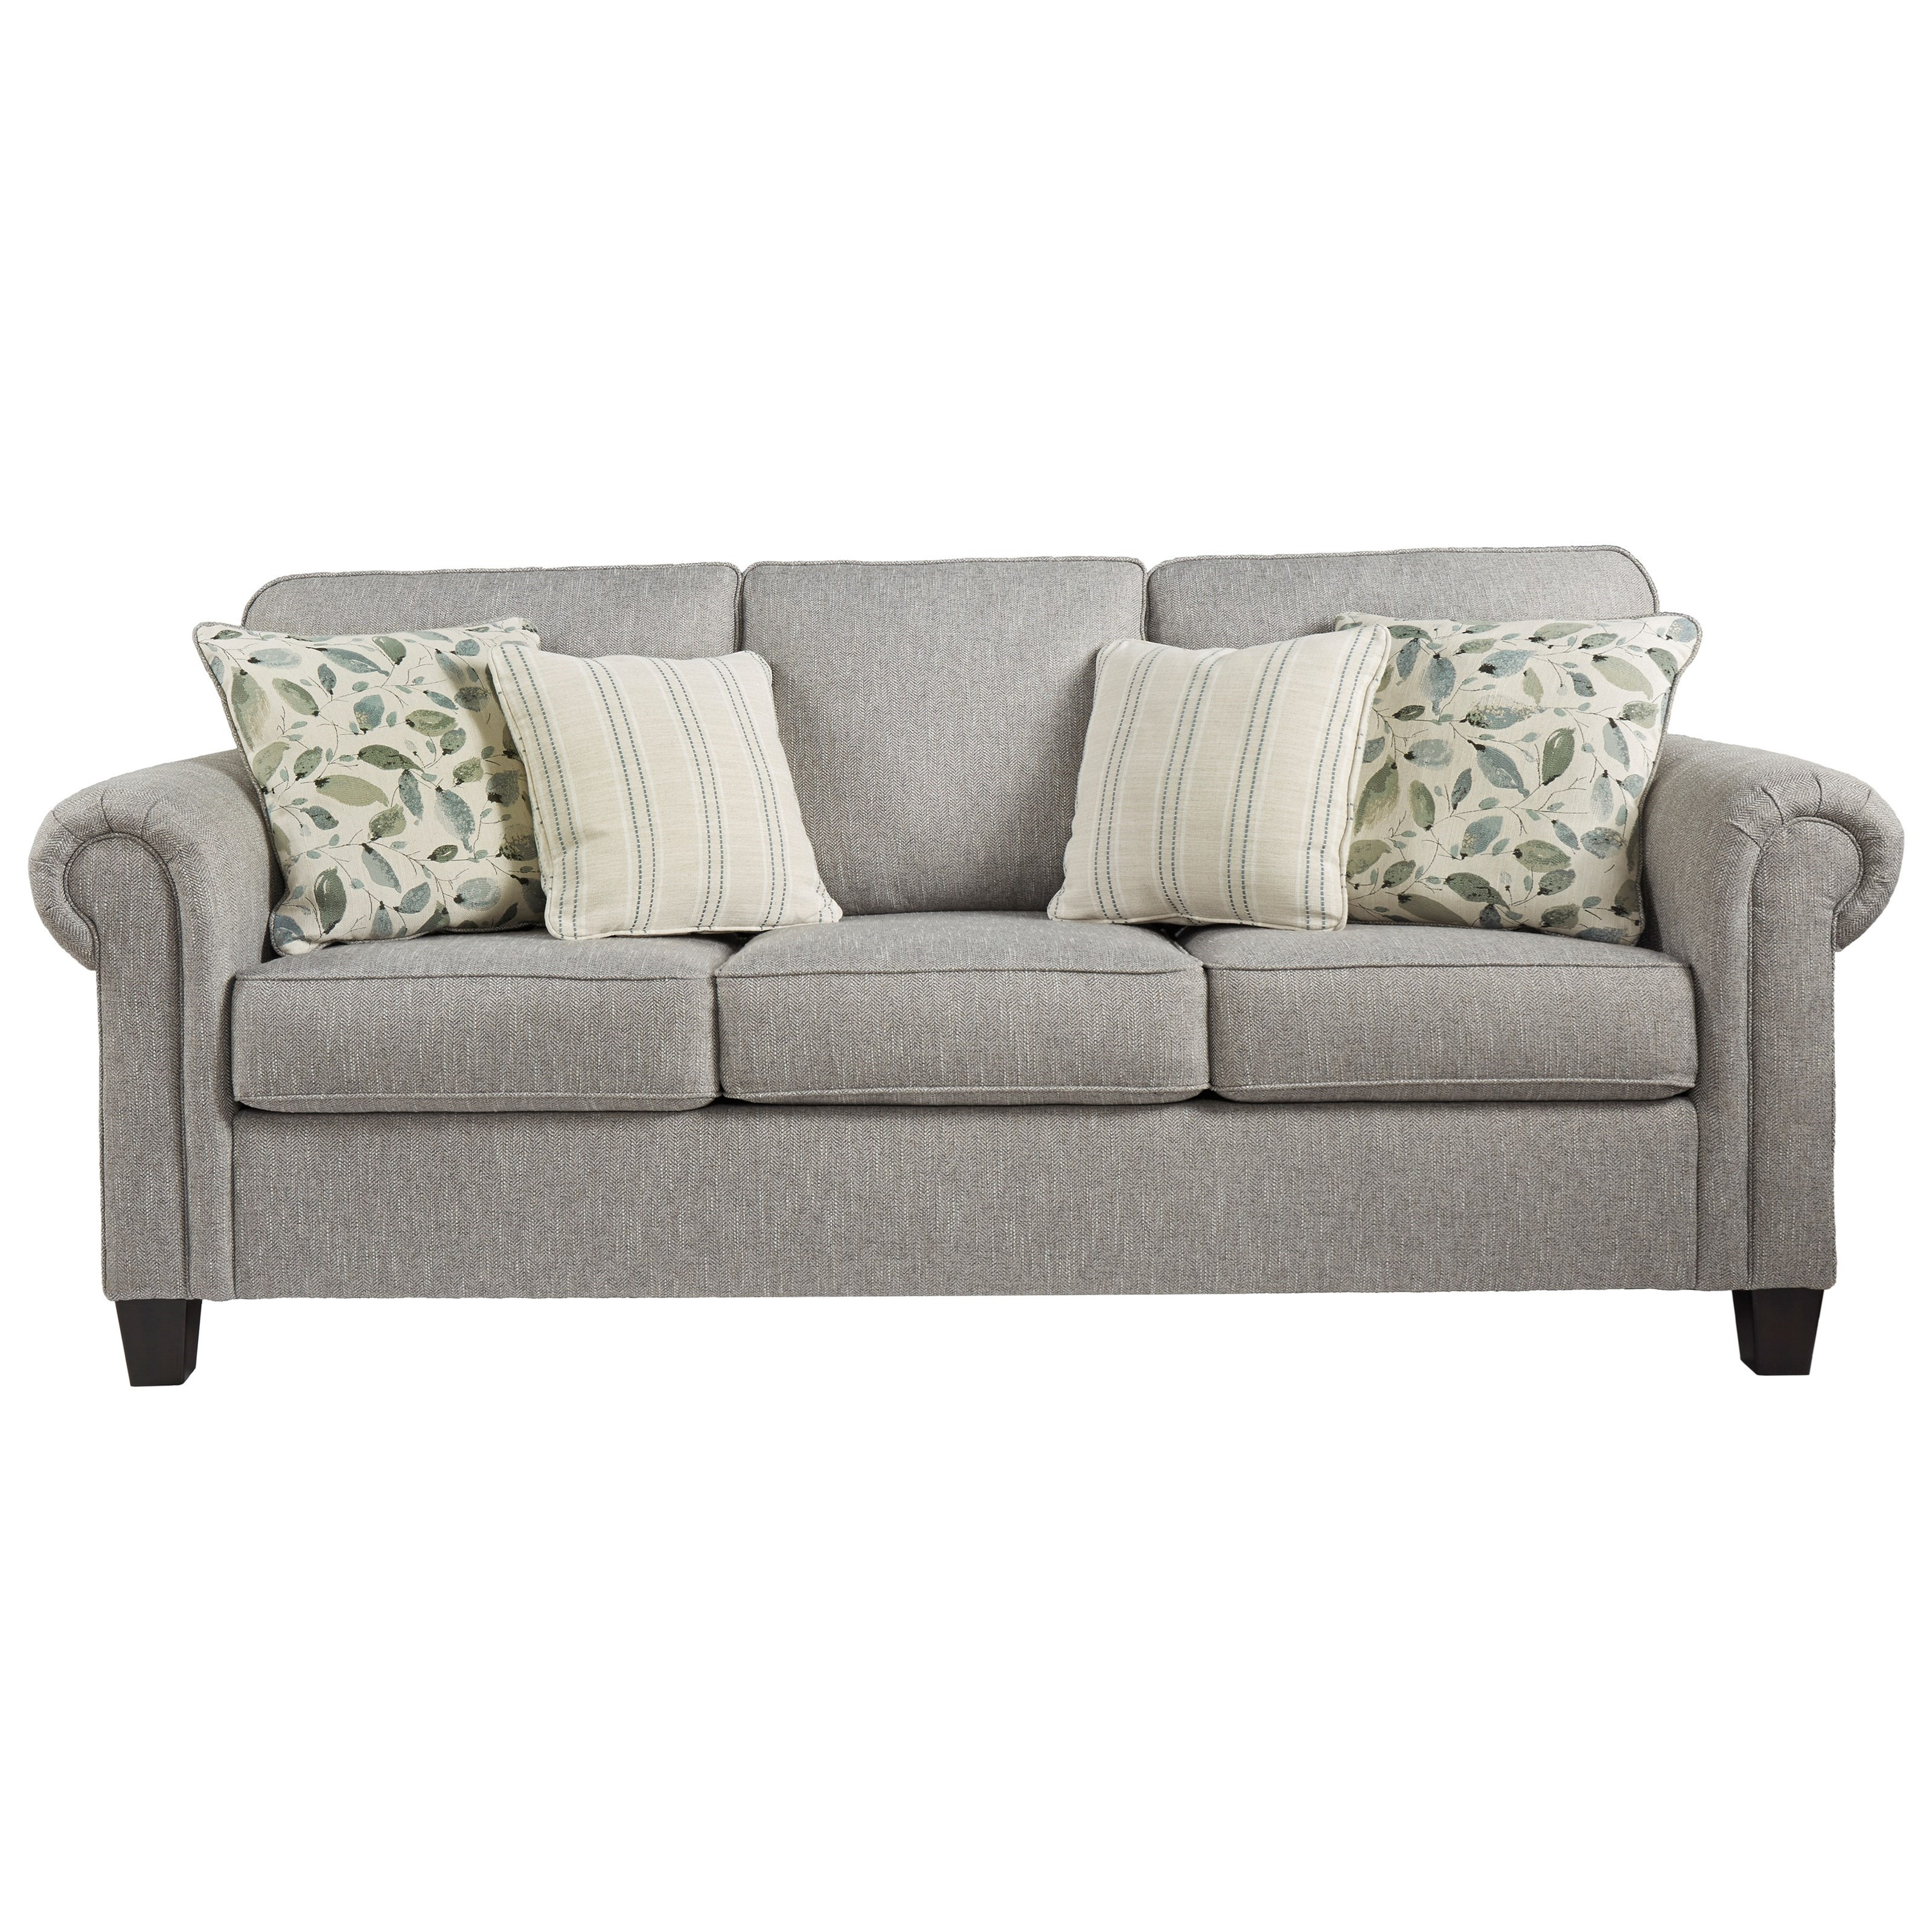 Ashley Sofas Prices: Signature Design By Ashley Alandari Transitional Sofa With